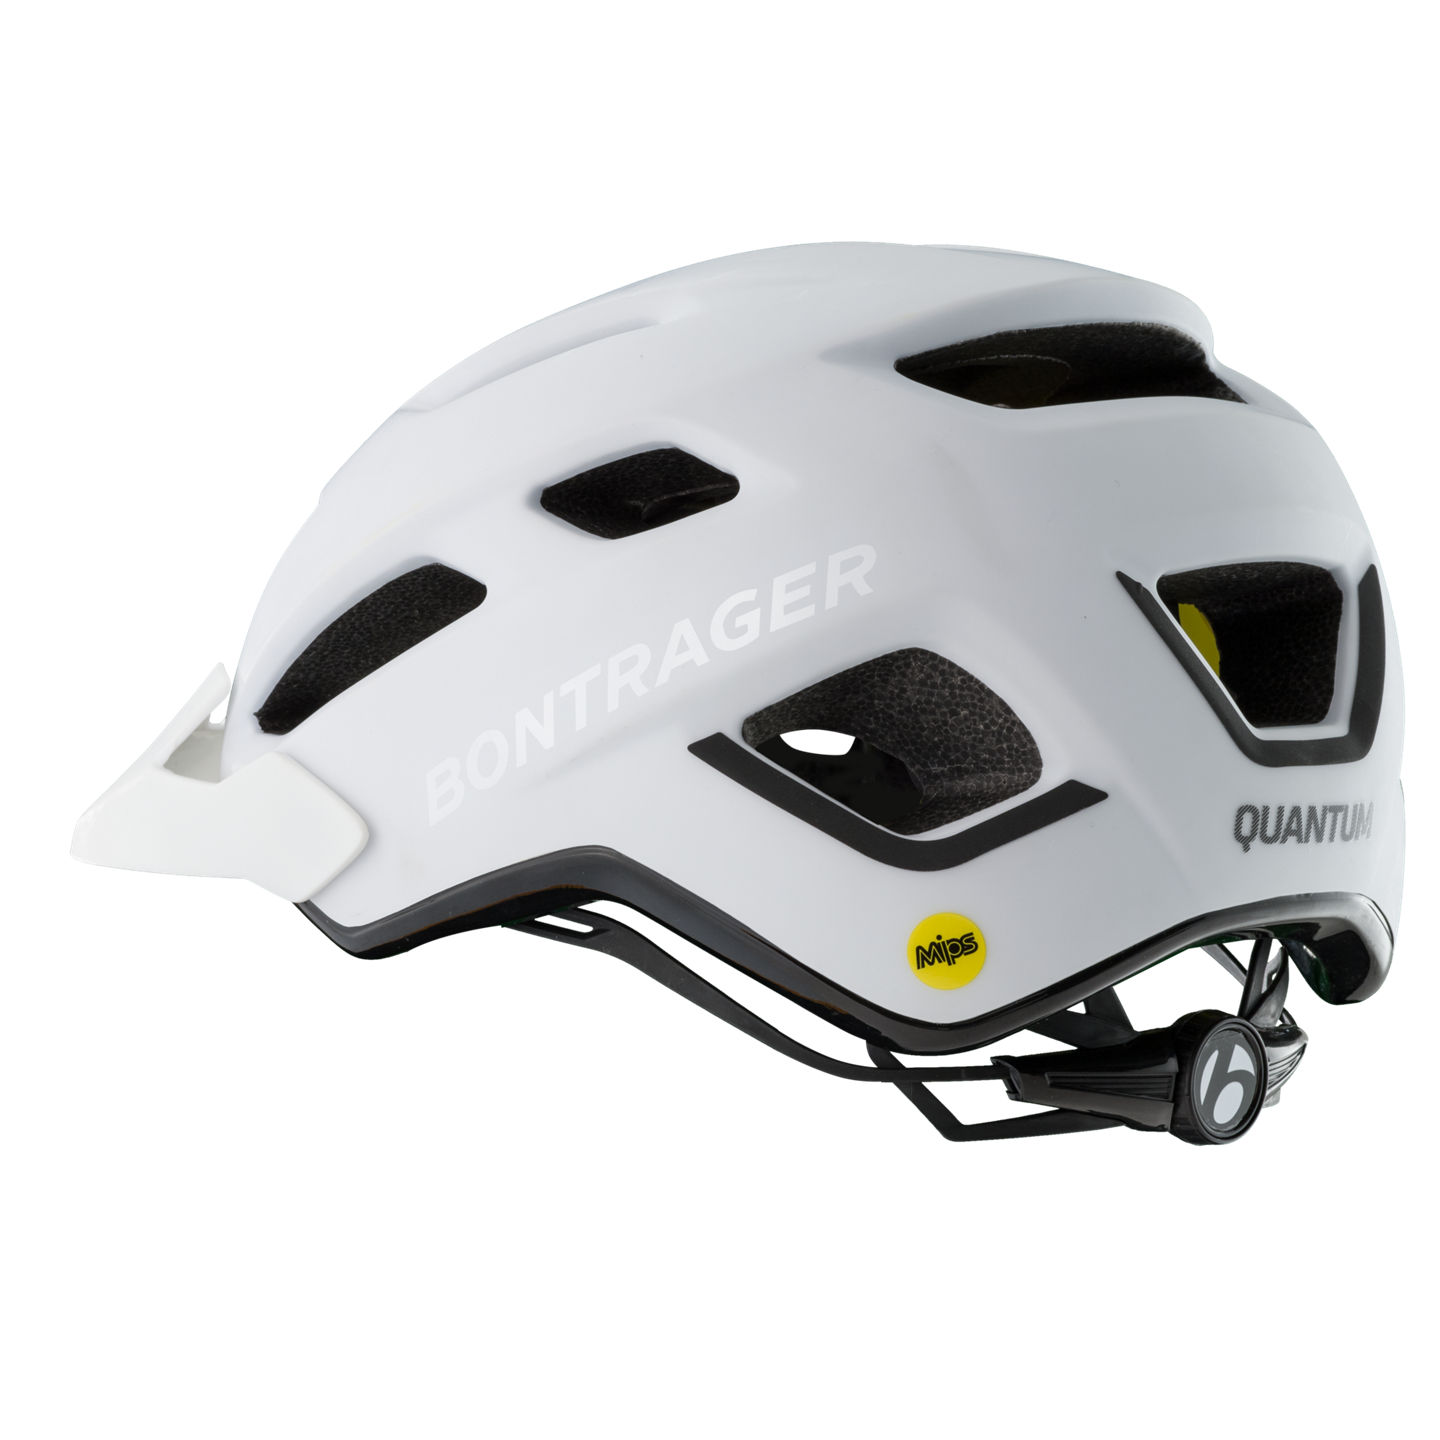 factory authentic online retailer super cheap Bontrager Quantum MIPS Bike Helmet - Vancouver Island Bike Shop ...